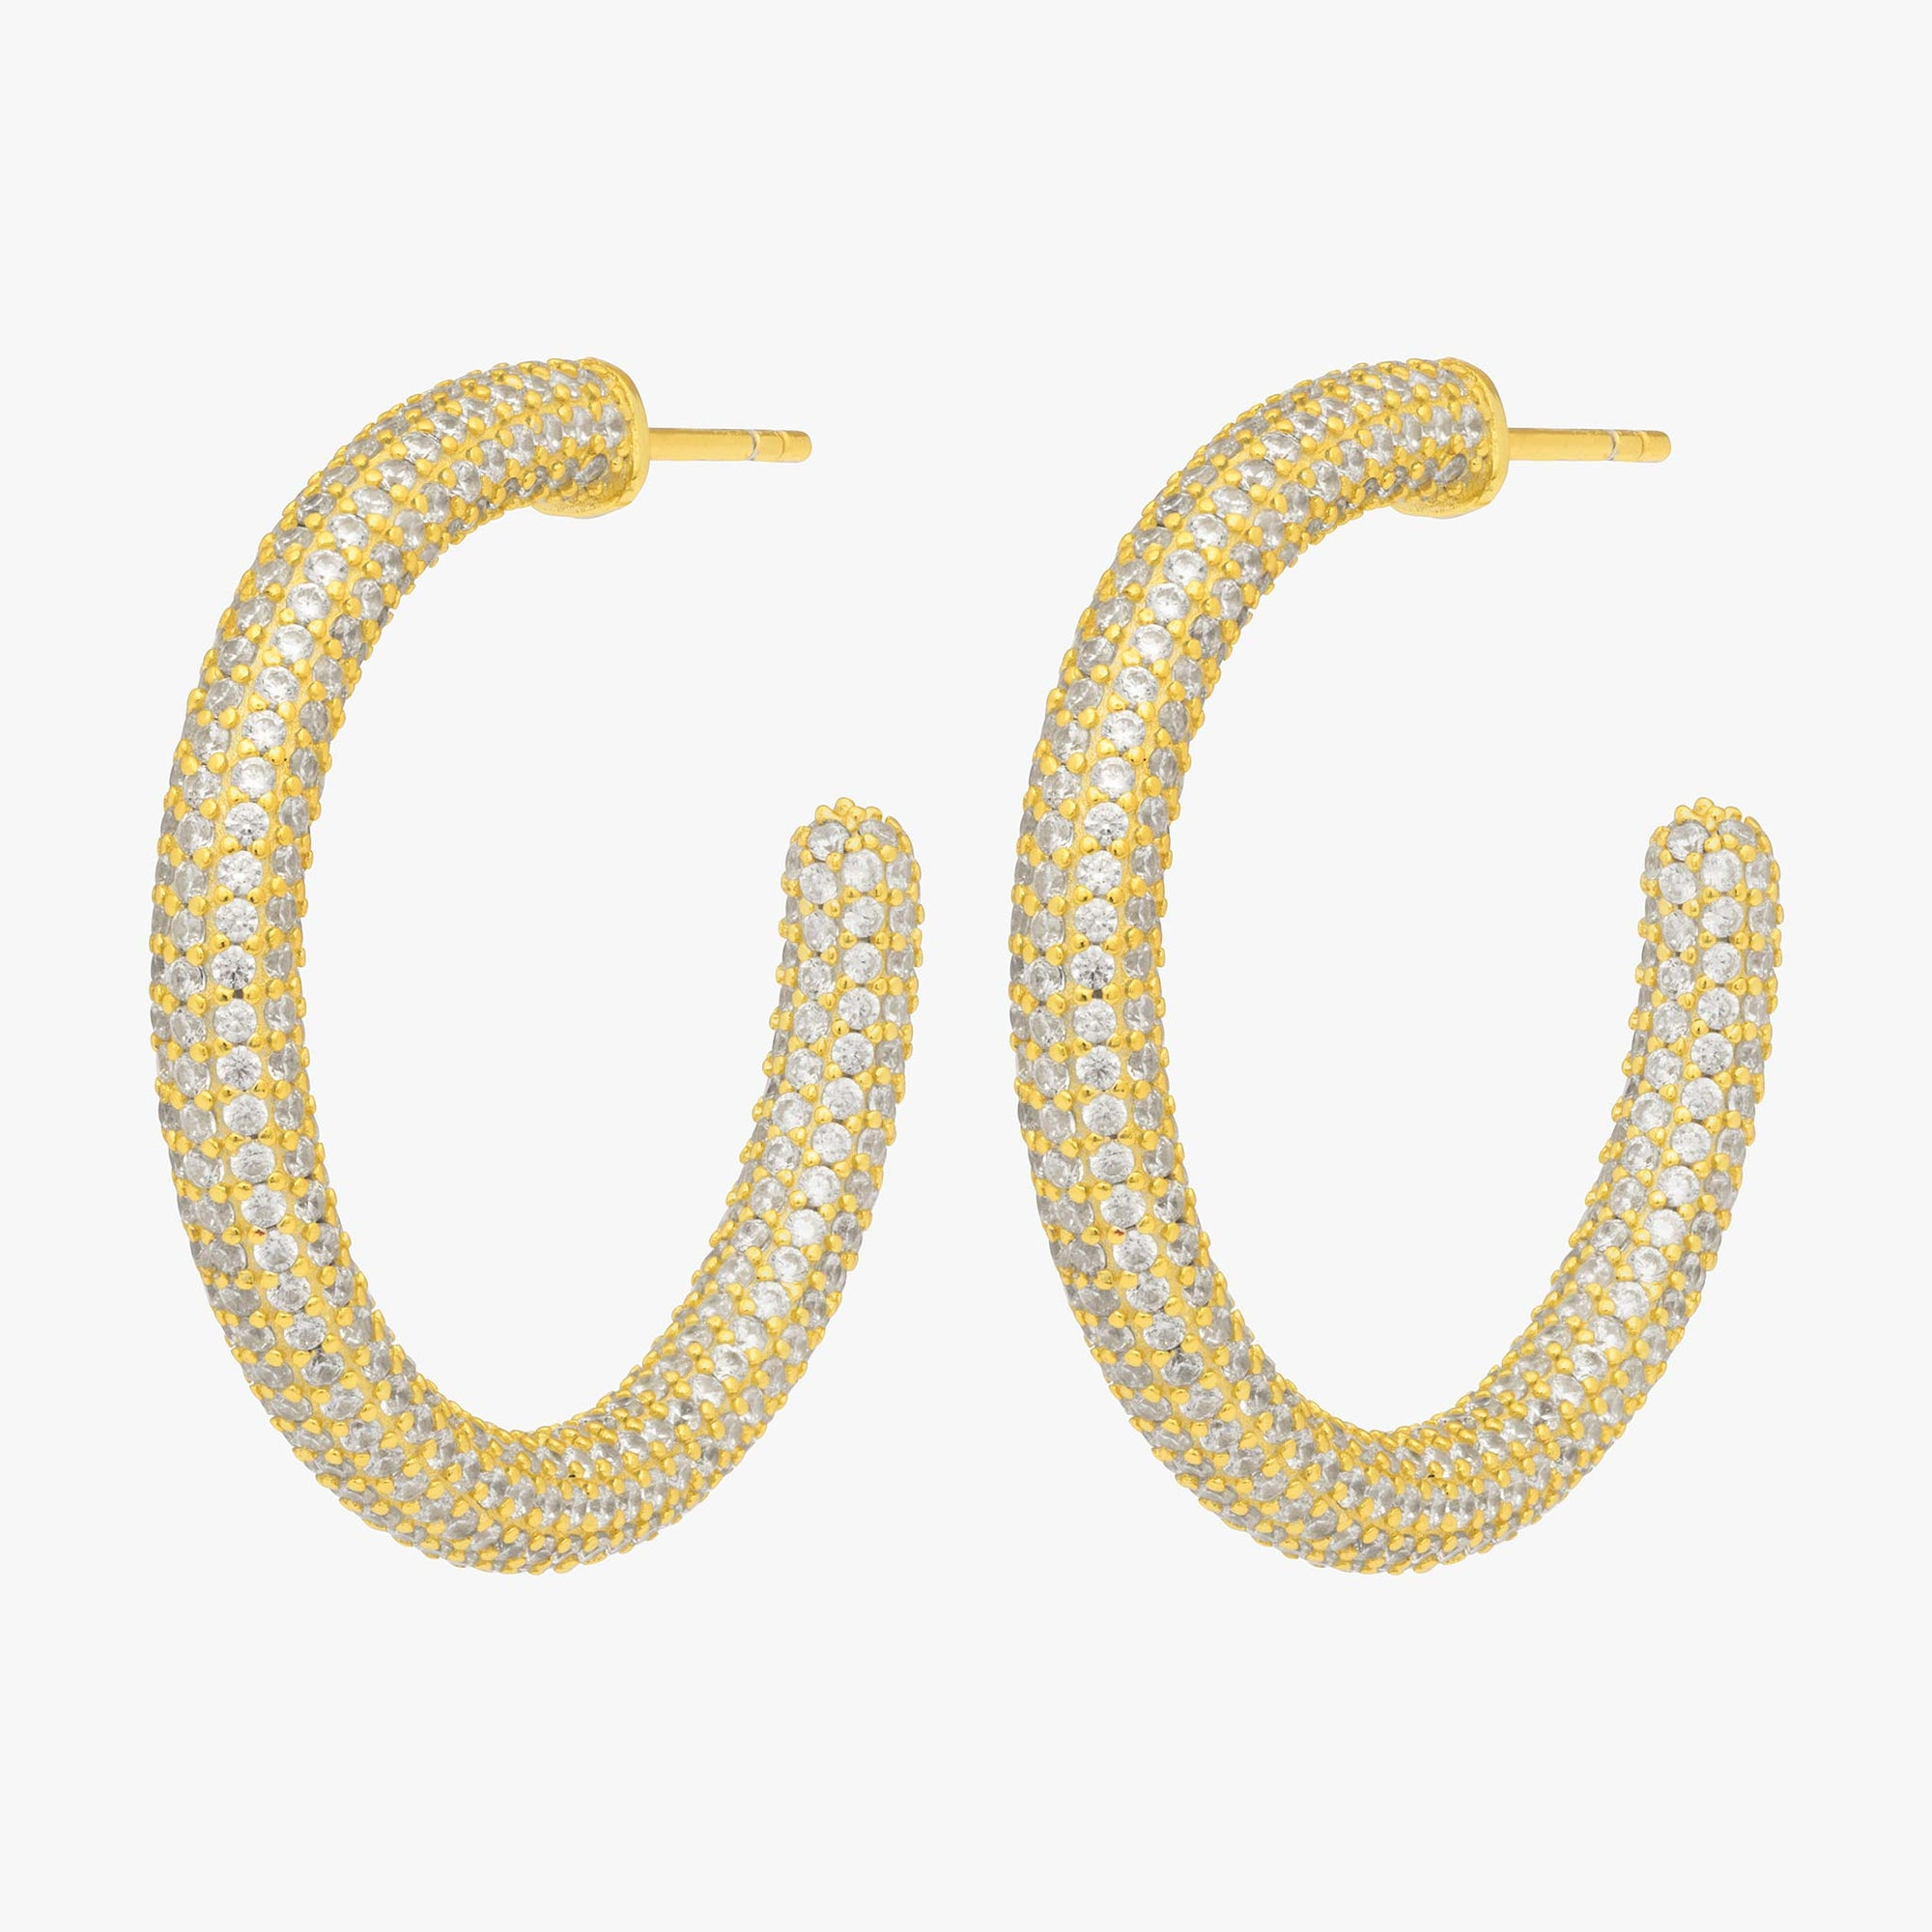 Tube-like hollow hoop with covered in CZs. [pair] color:gold